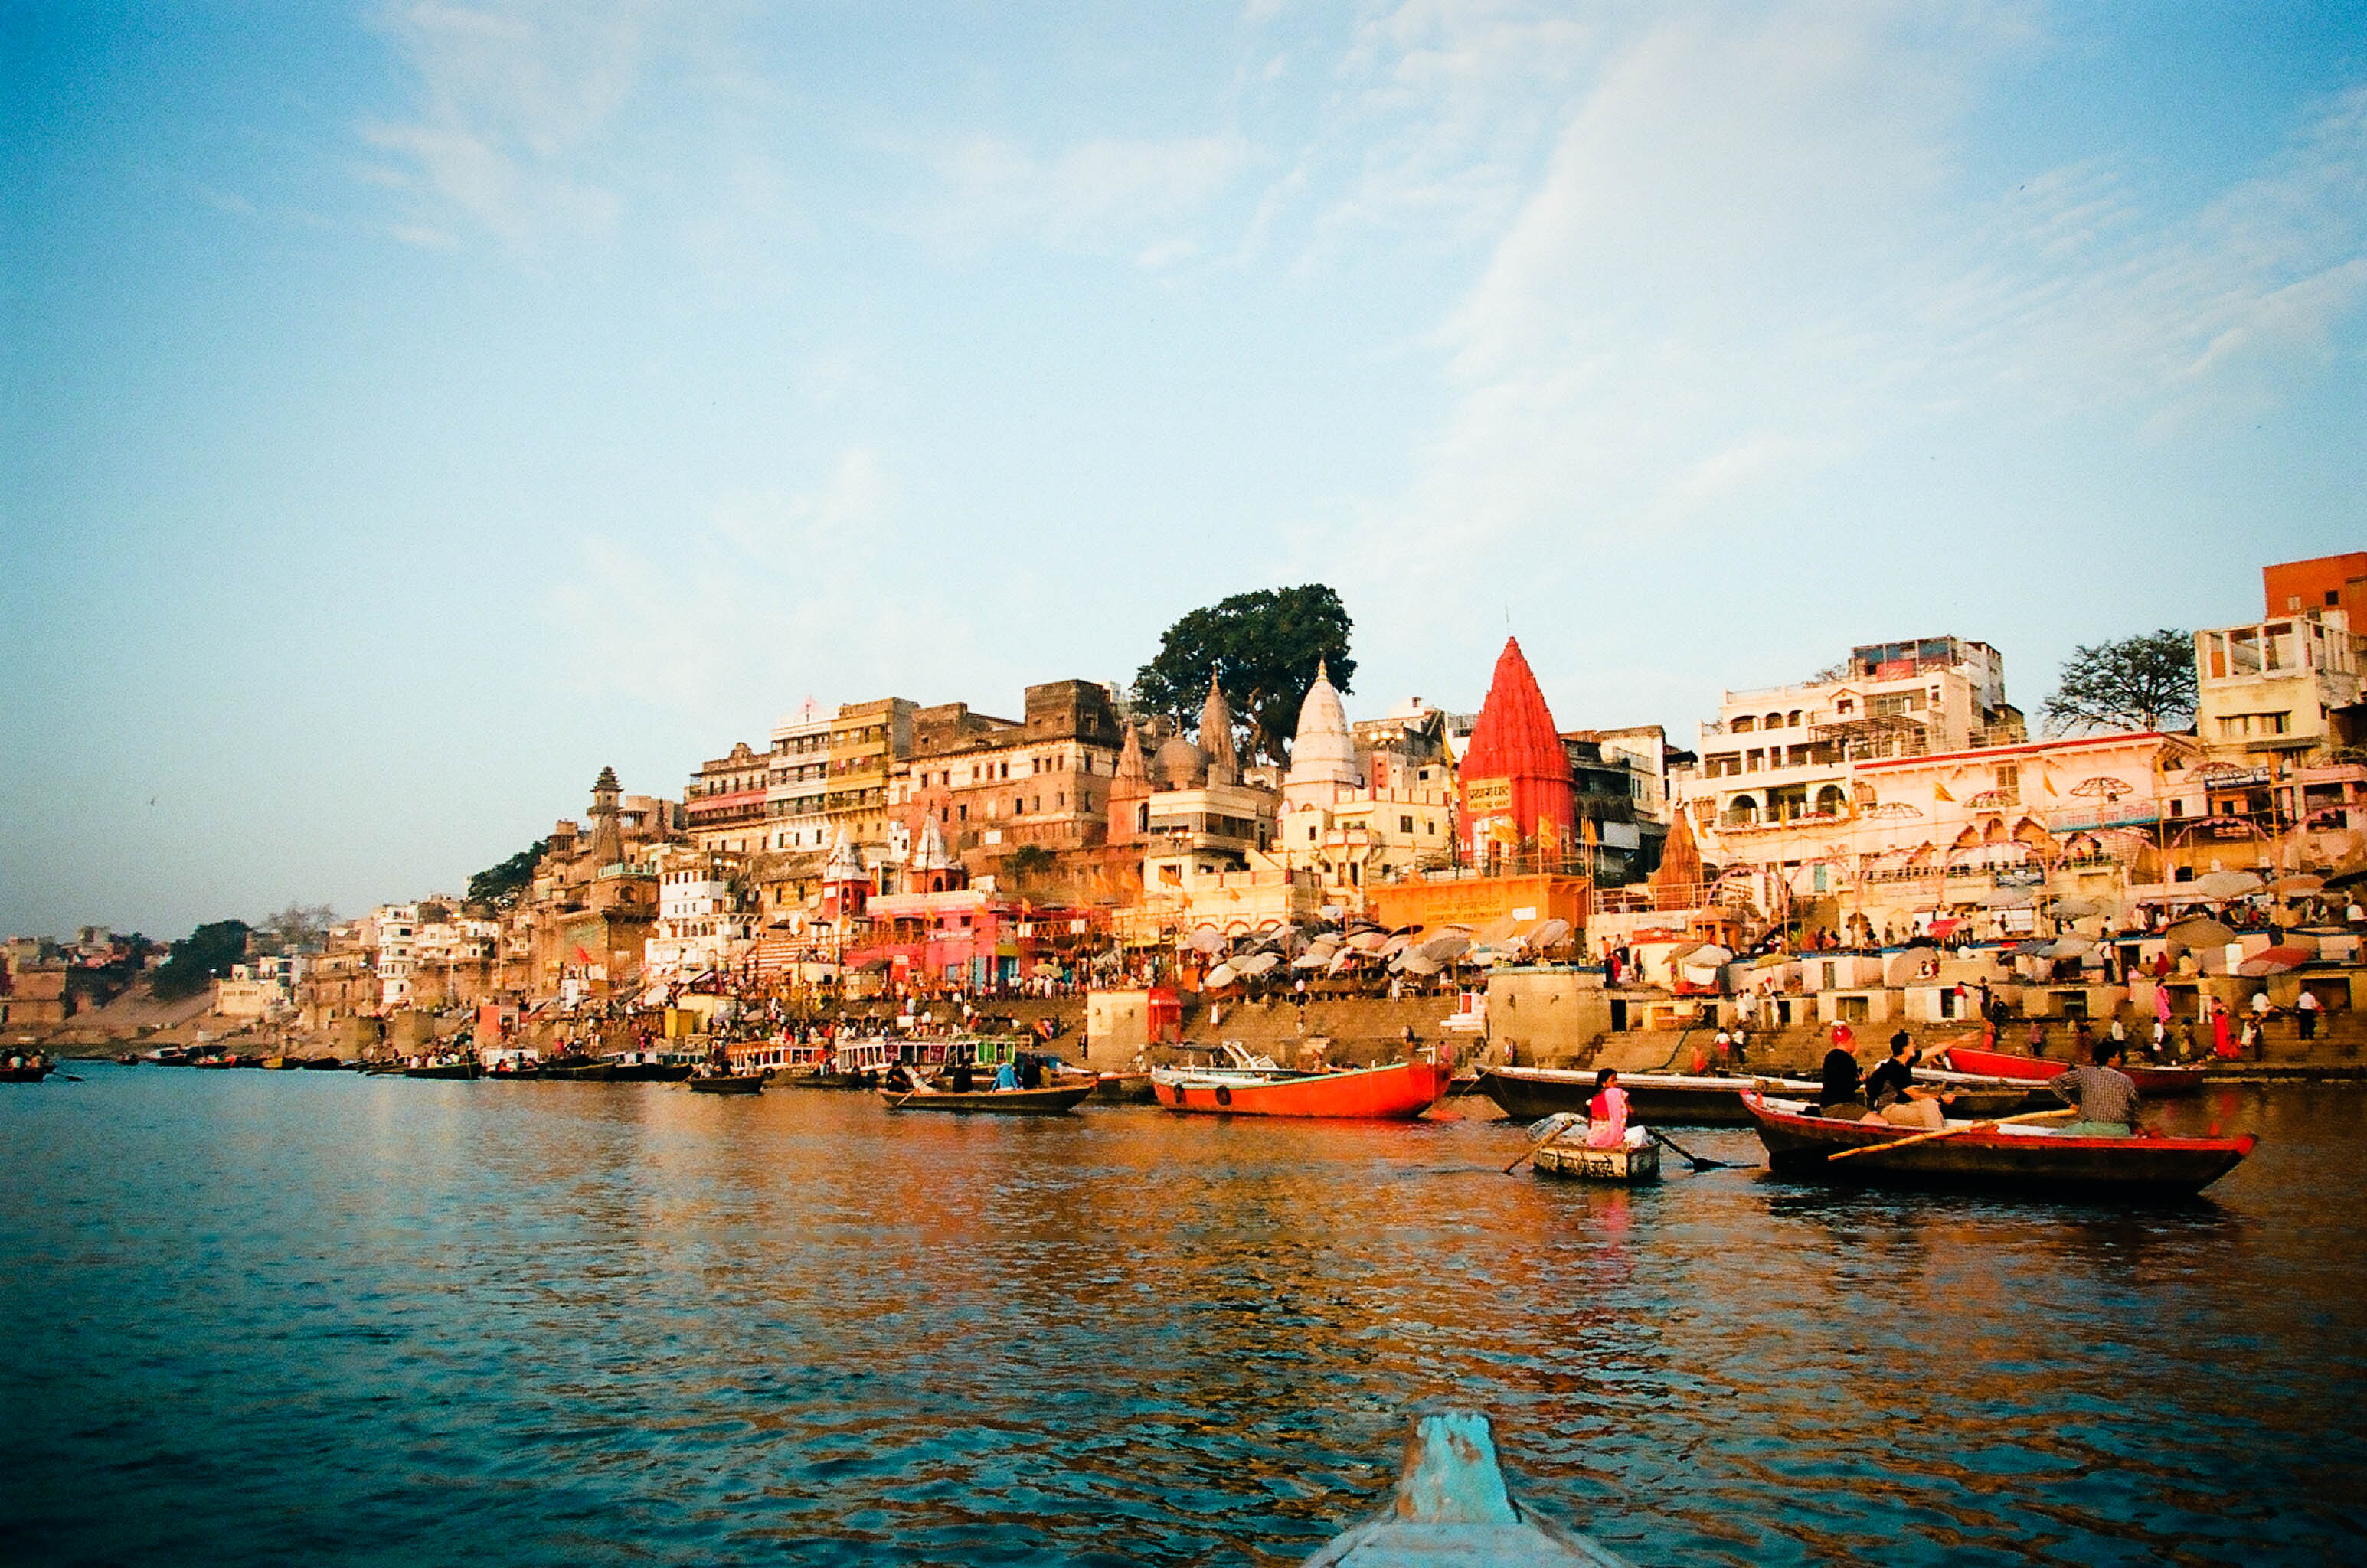 File:Ganges River bank in Varanasi.jpg